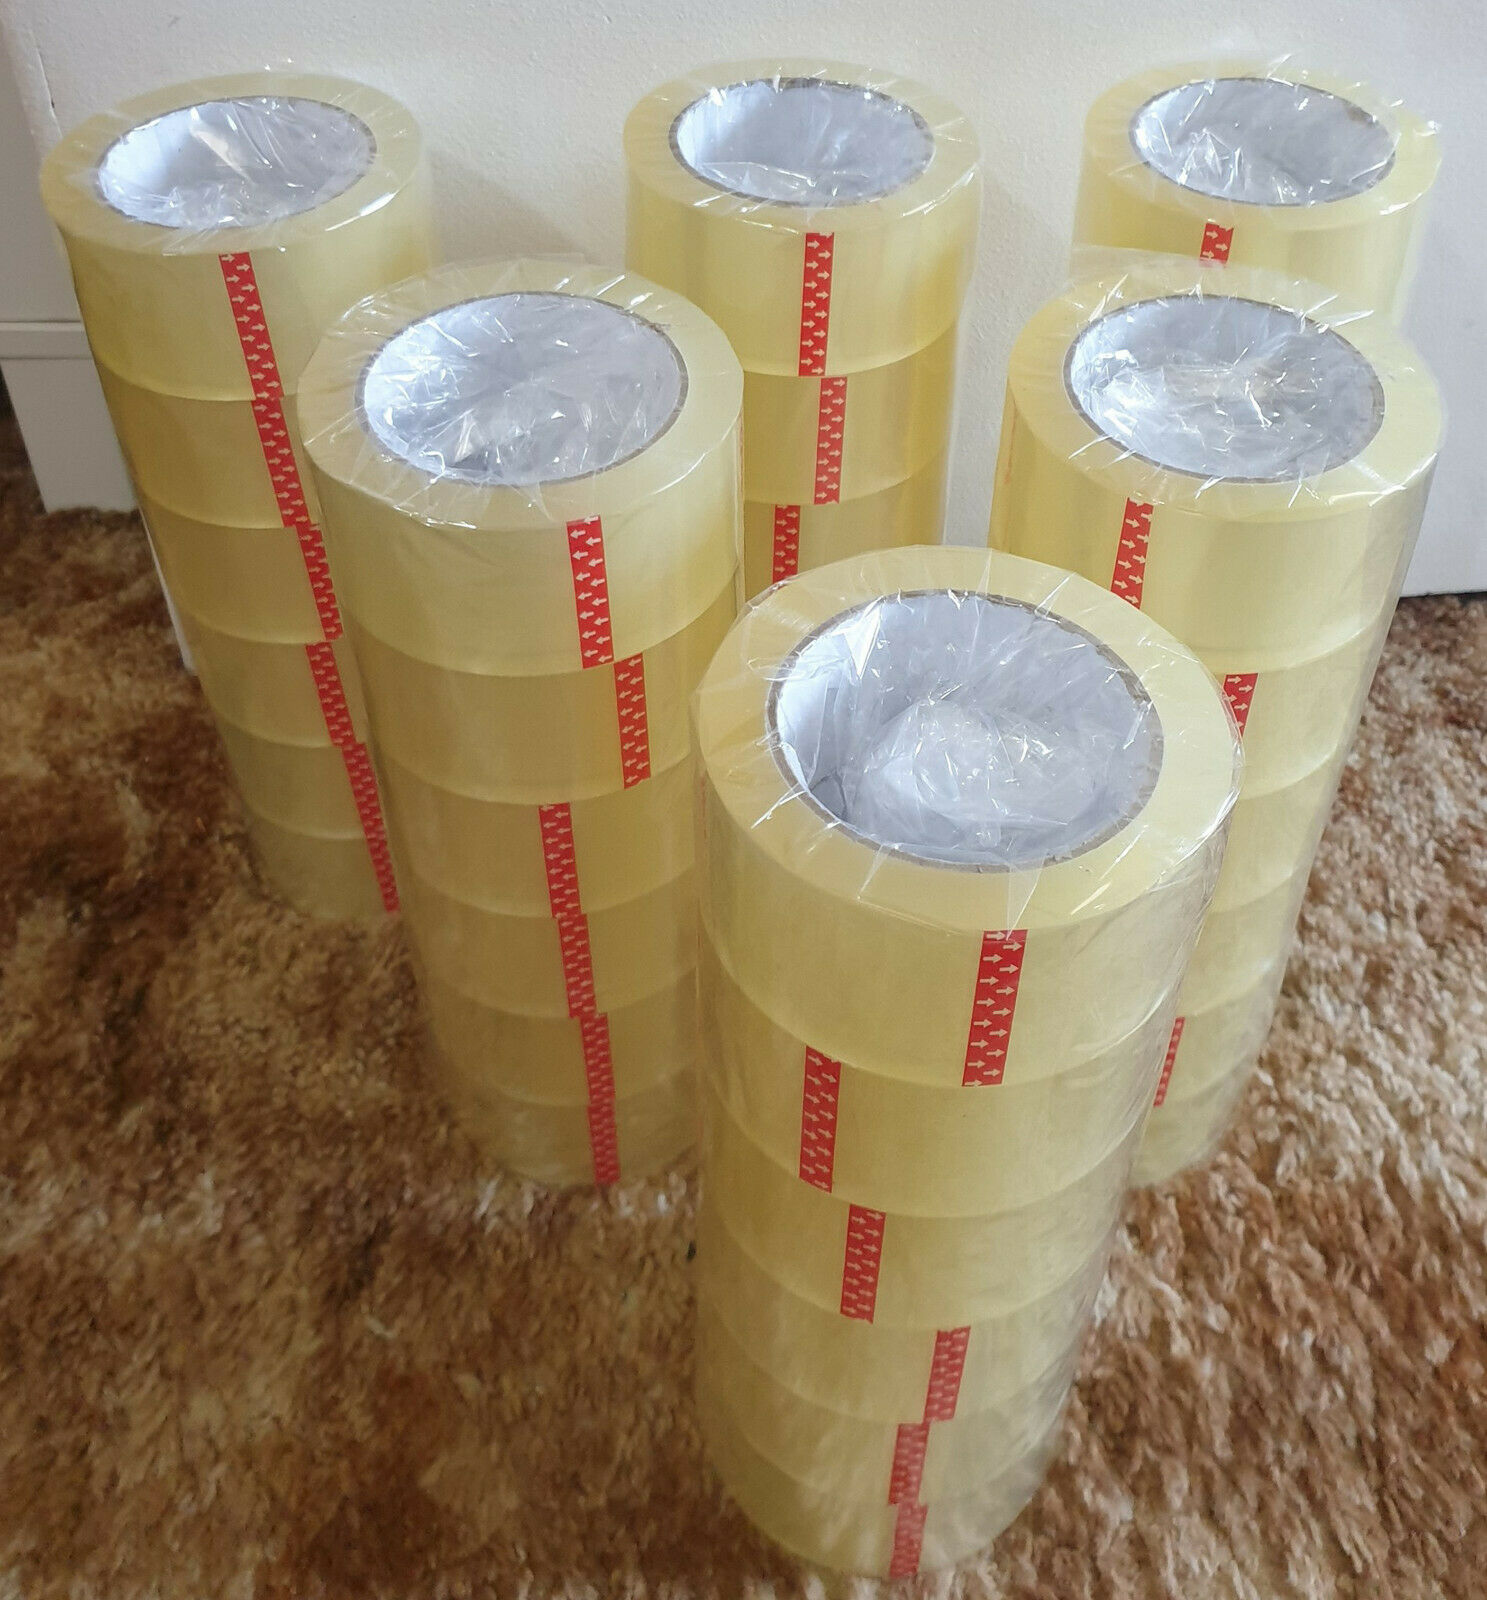 36 ROLLS Clear Packing Tape - 2 INCH x 110 Yards  Carton Sea